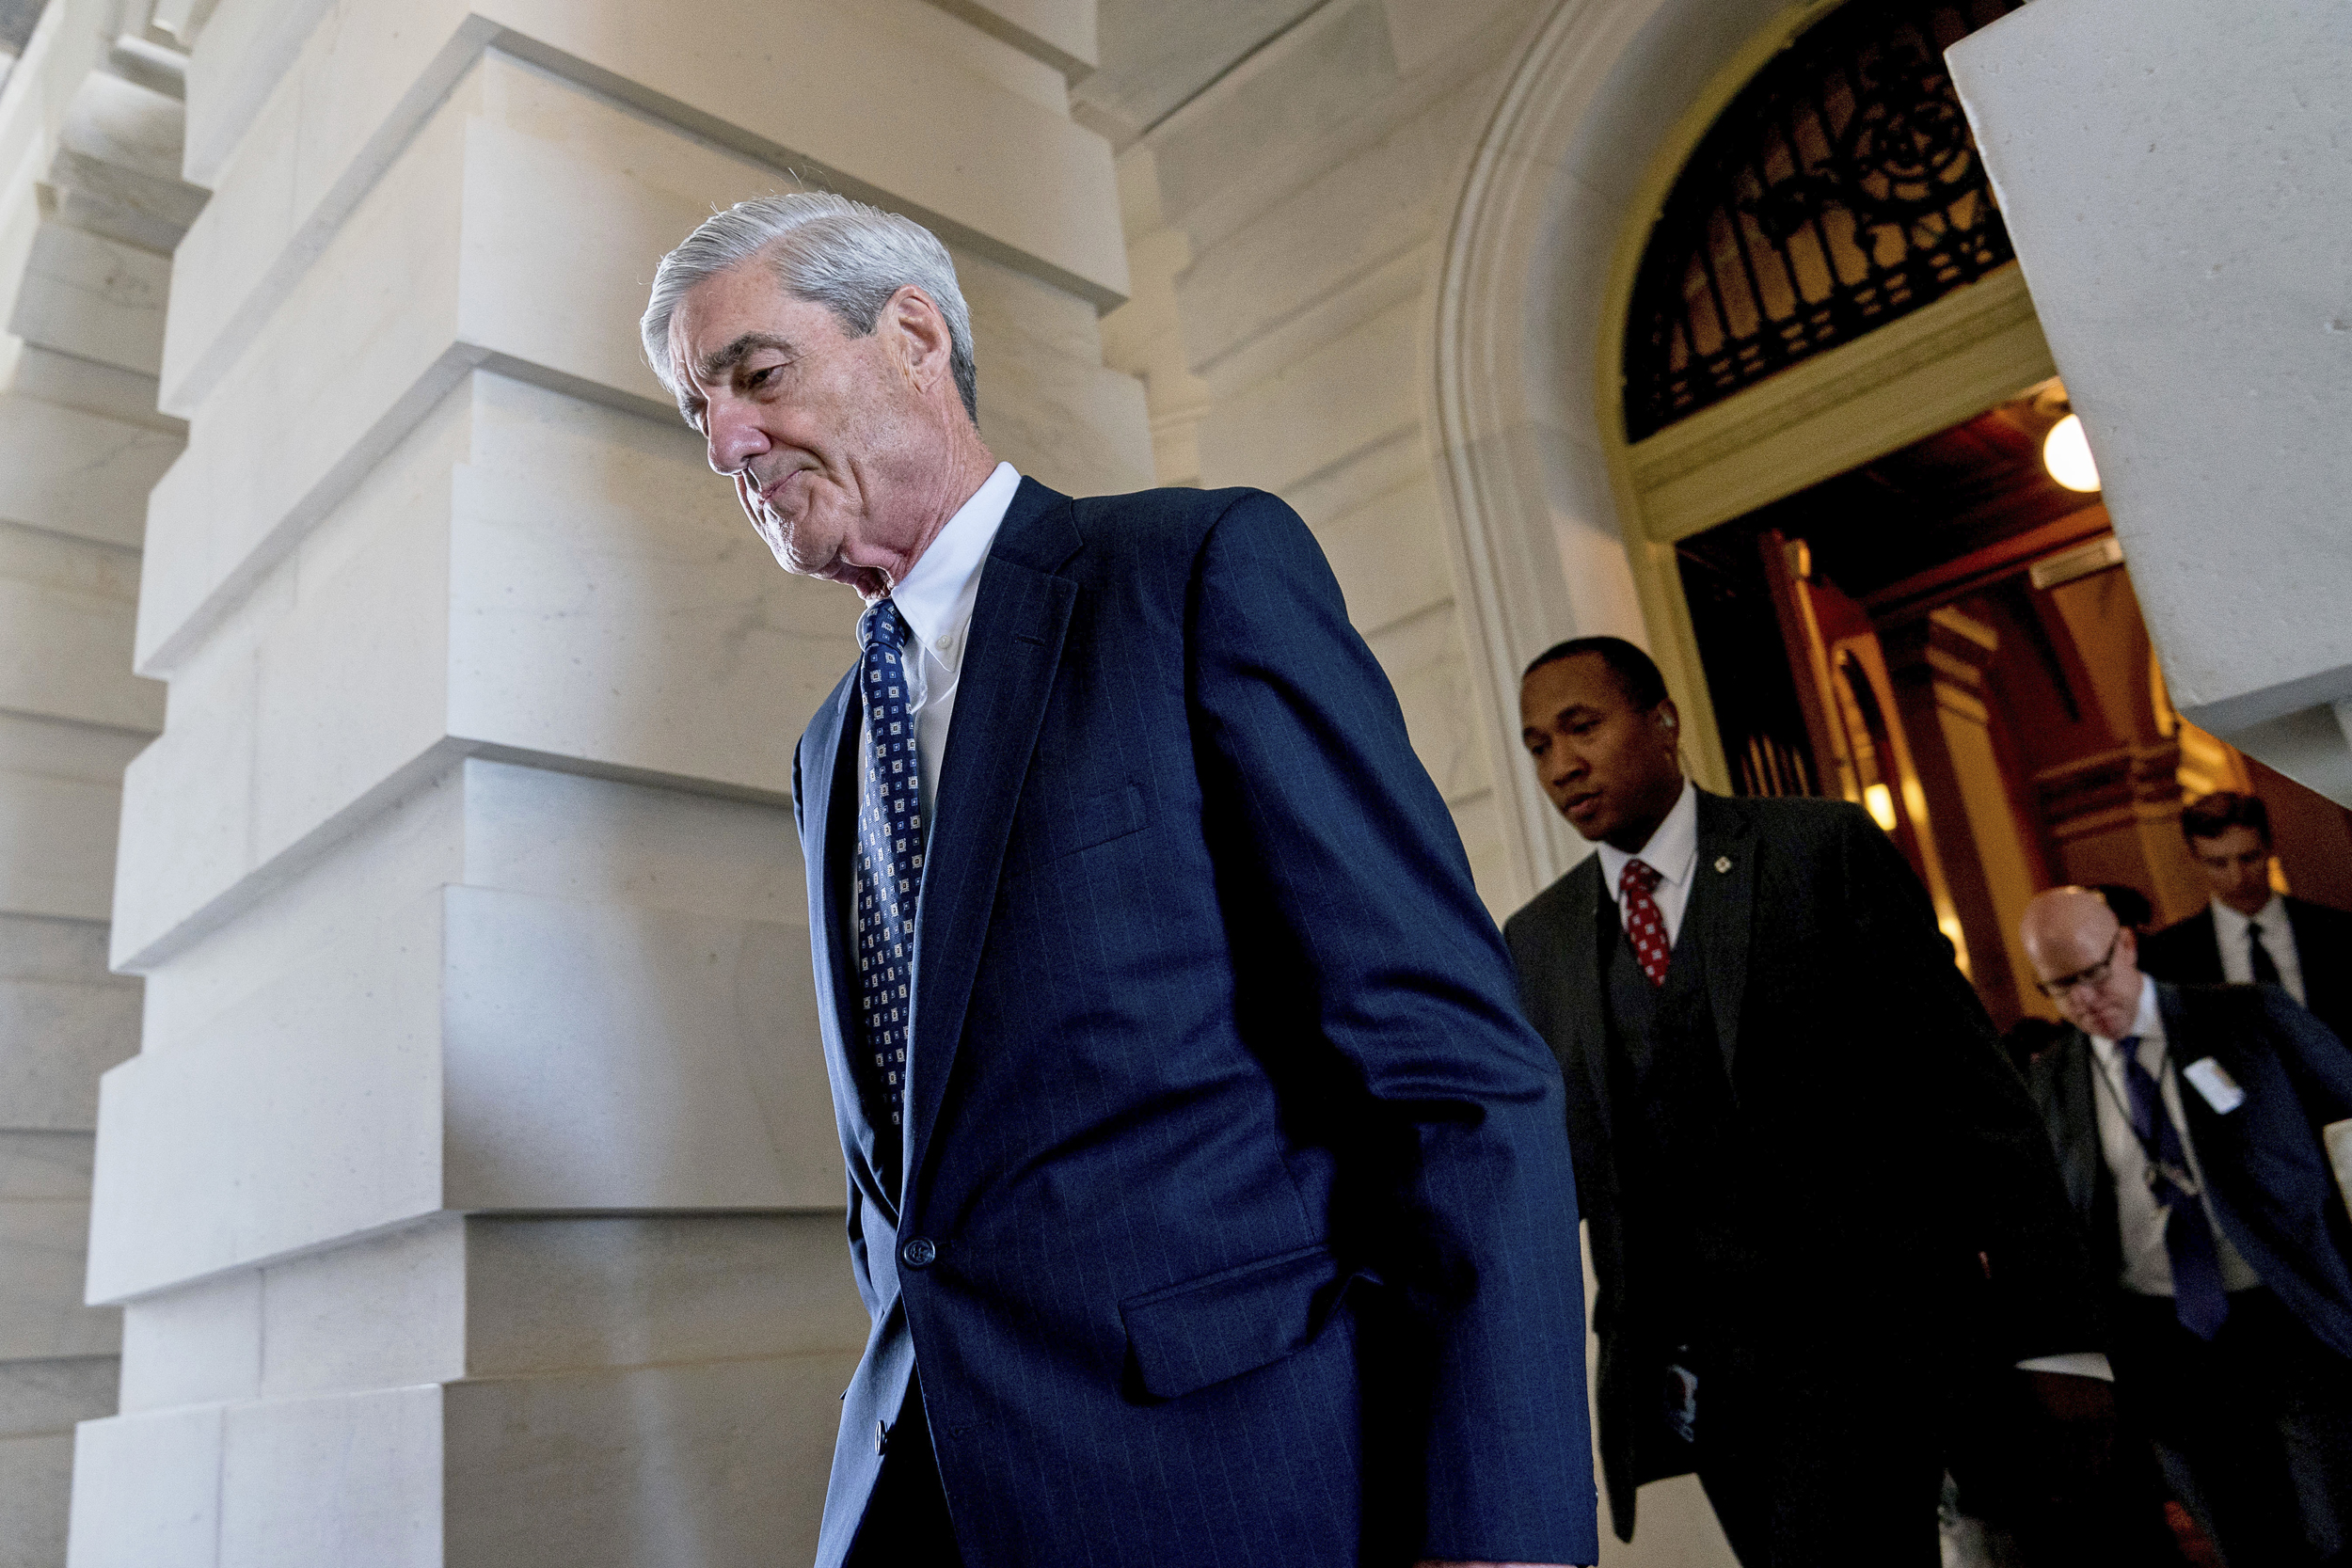 Foreign-interference-in-U.S.-elections-still-going-on,-Mueller-says